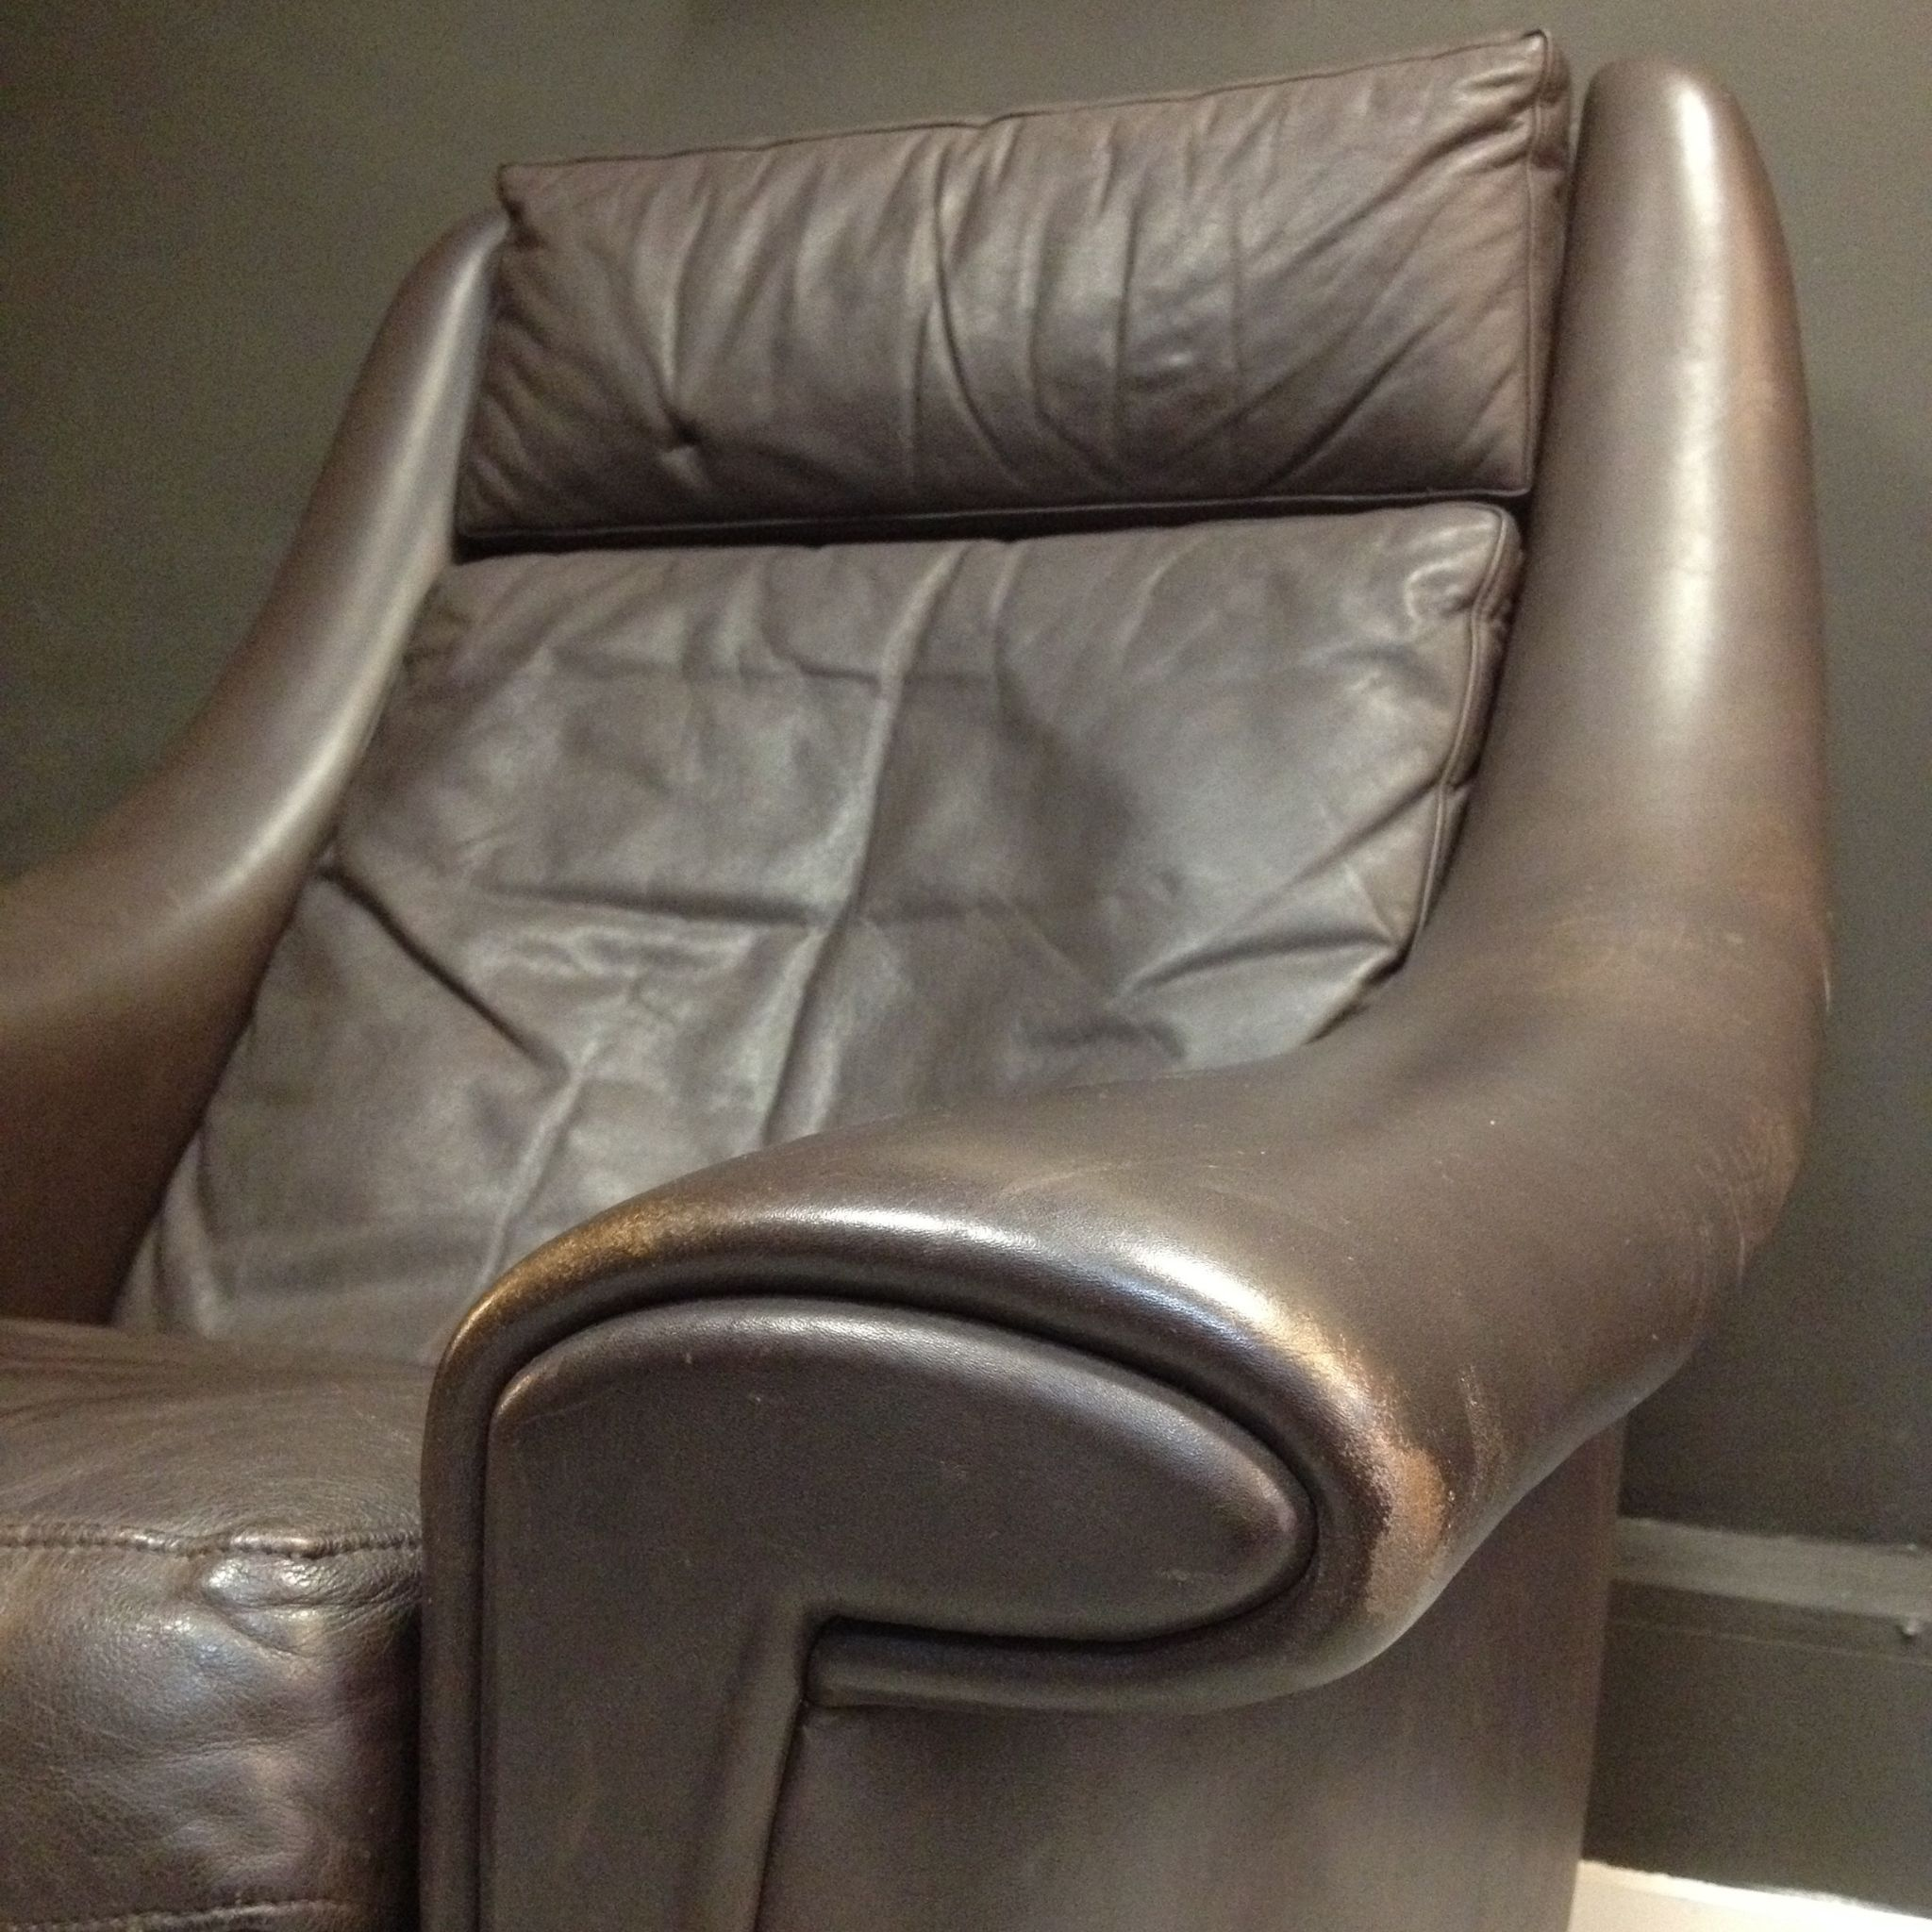 & Super Comfy Danish Leather Chair